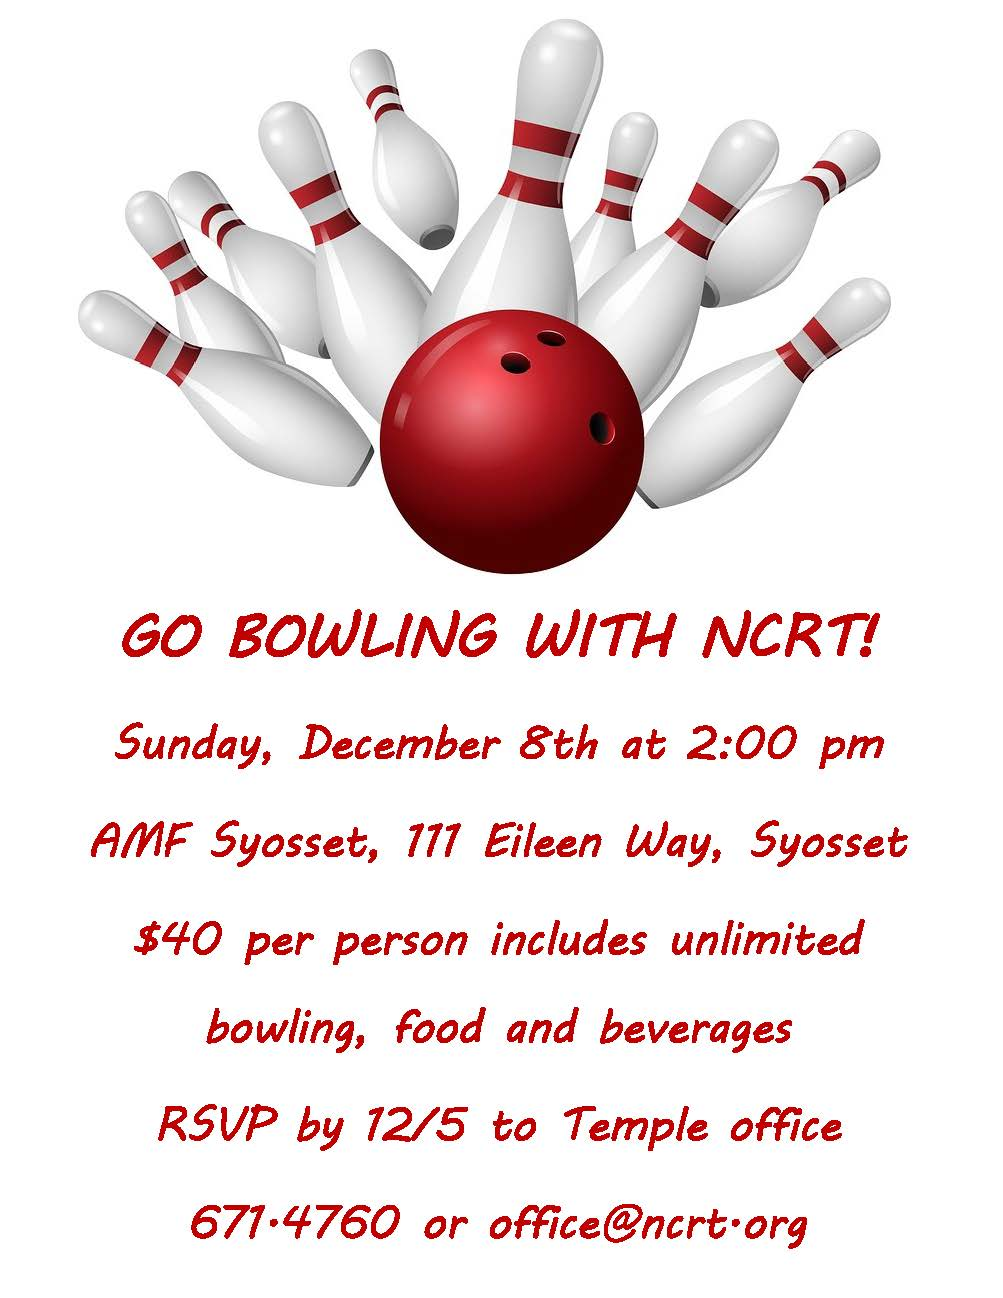 Go Bowling with NCRT!